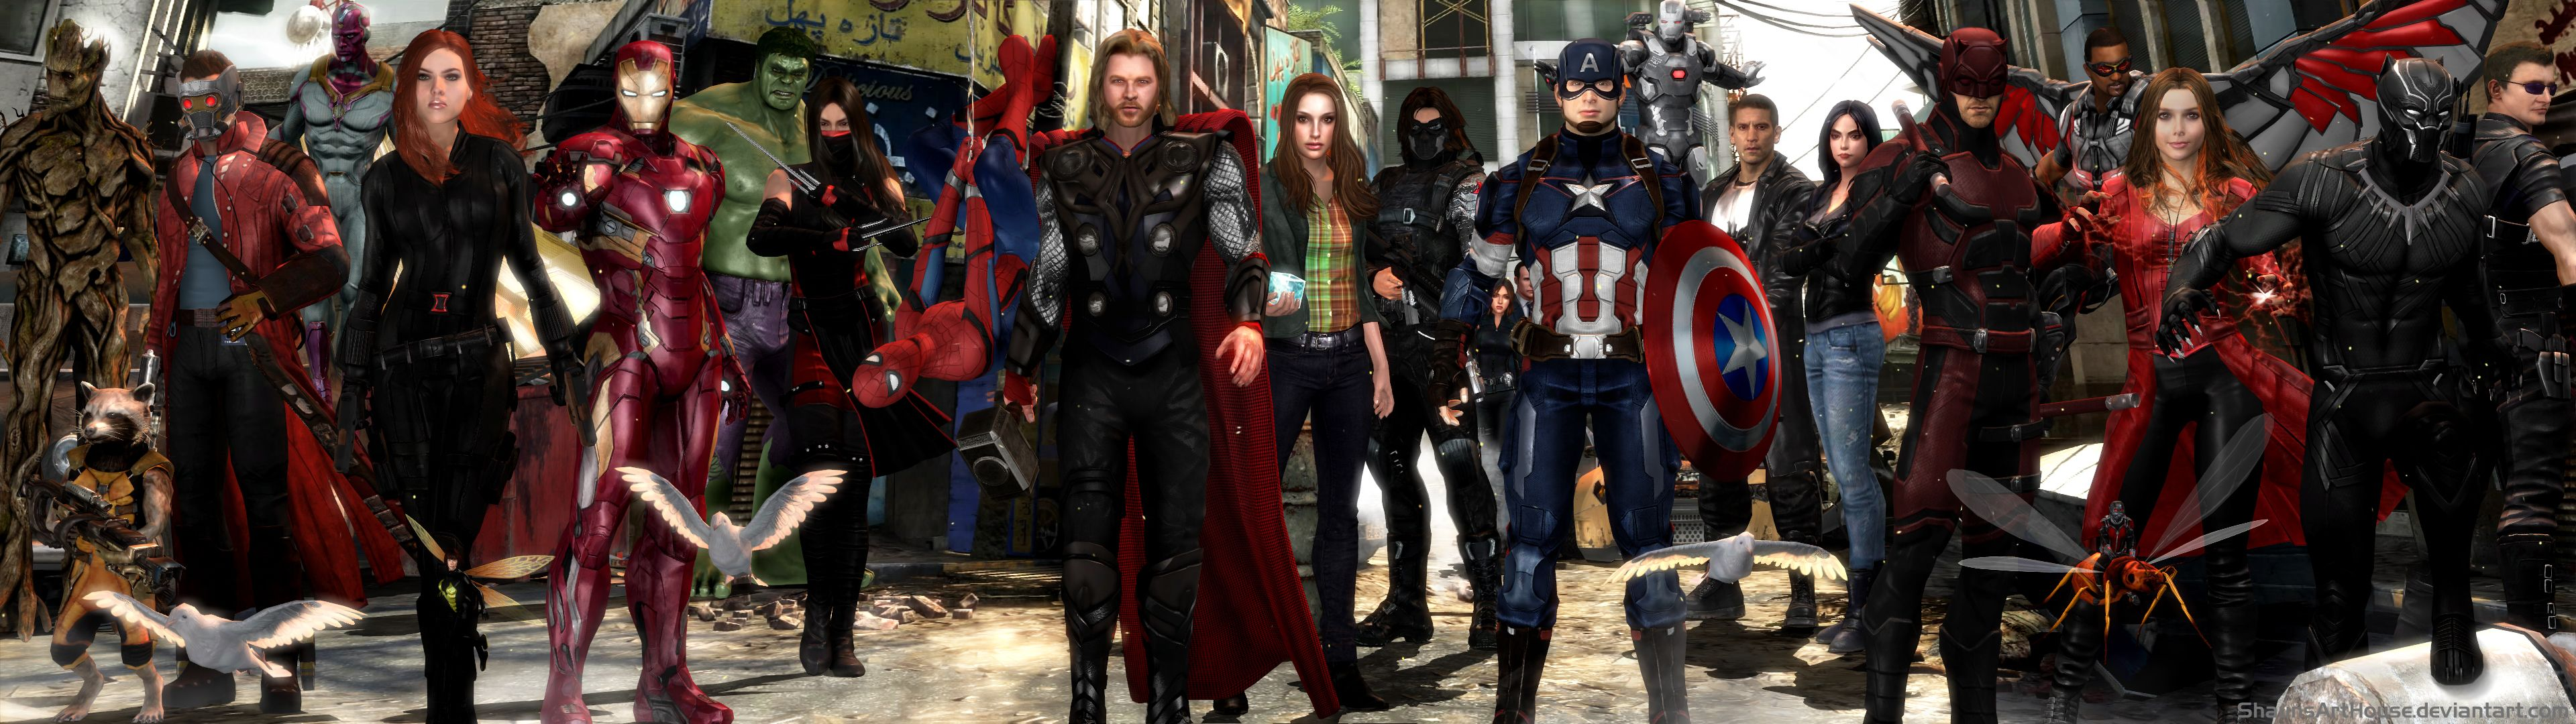 3840x1080 Avengers MCU, HD Superheroes, 4k Wallpapers, Images, Backgrounds ...